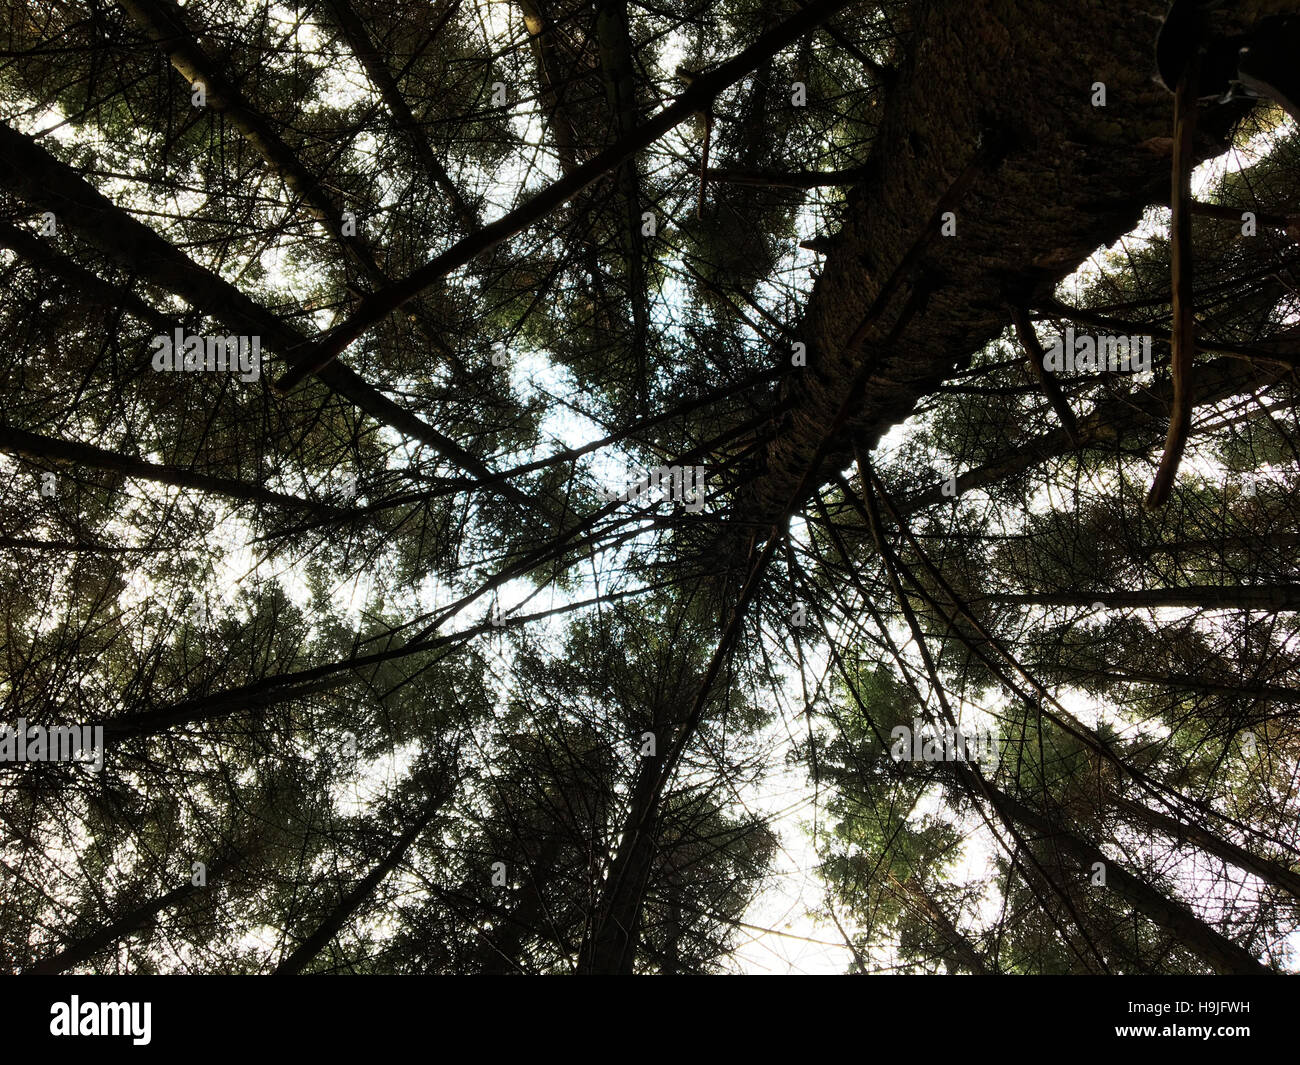 View looking up through conifer trees in forestry Wales UK - Stock Image